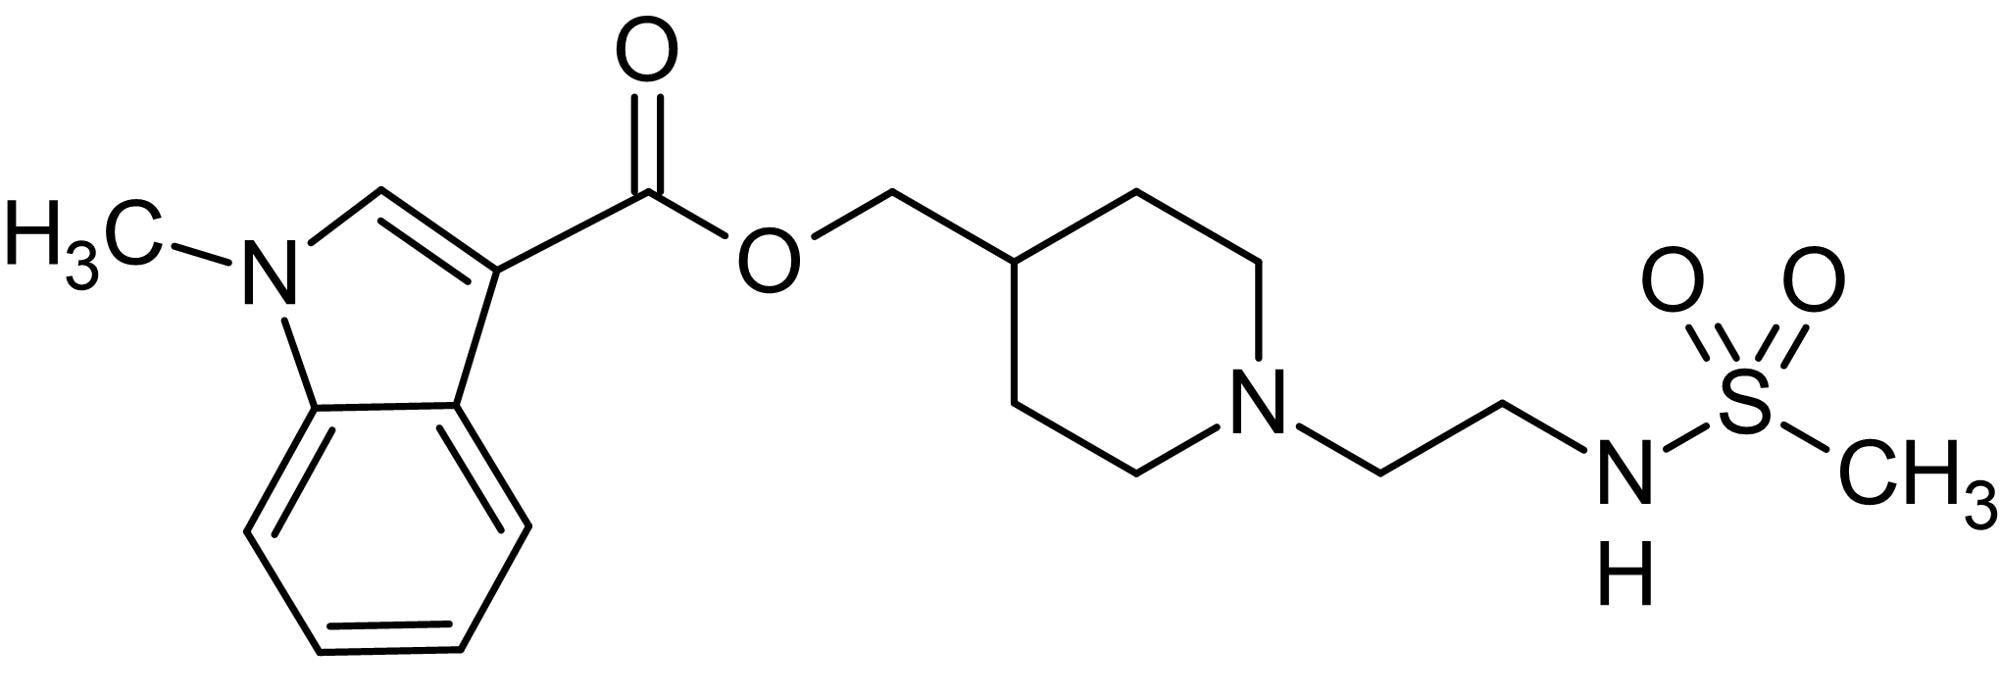 Chemical Structure - GR113808, selective 5-HT<sub>4</sub> antagonist (ab120544)